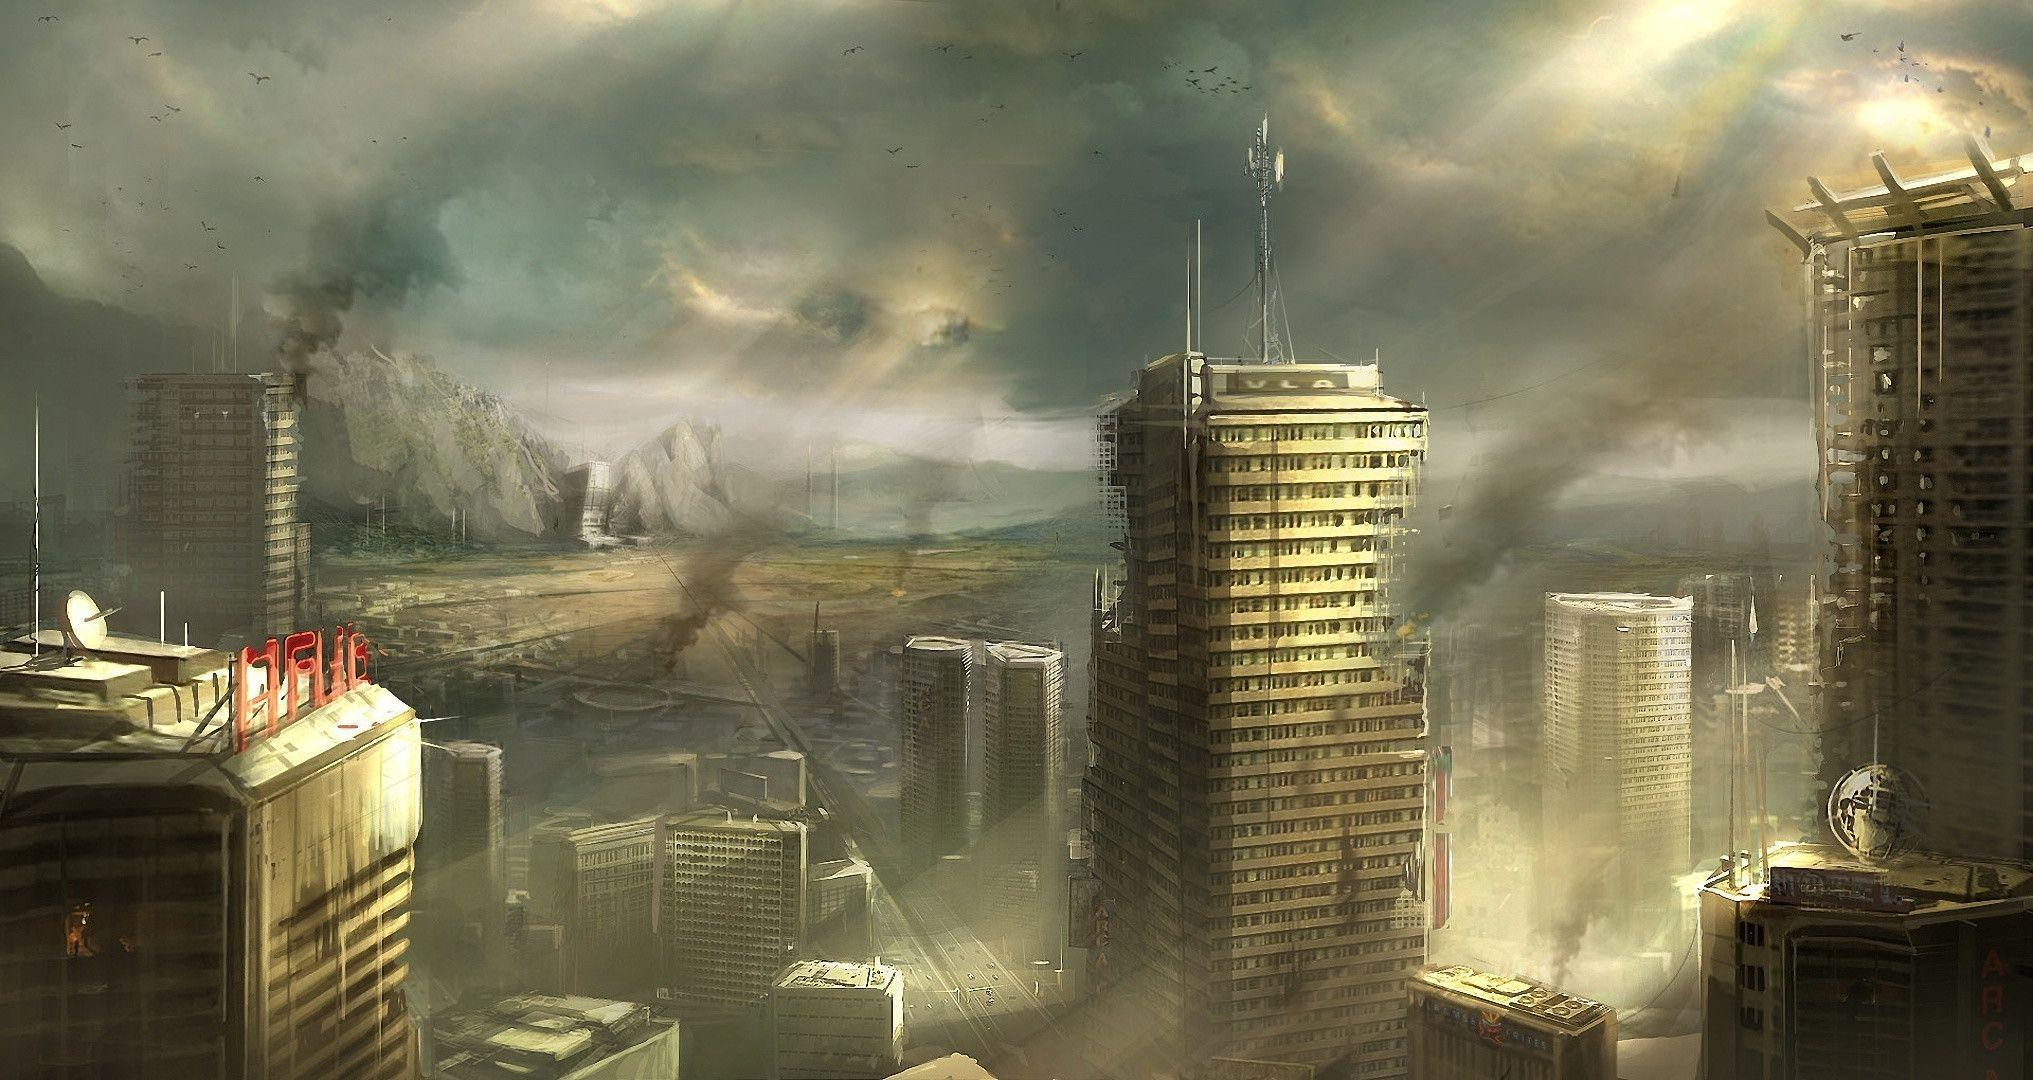 Image For > Apocalypse City Backgrounds